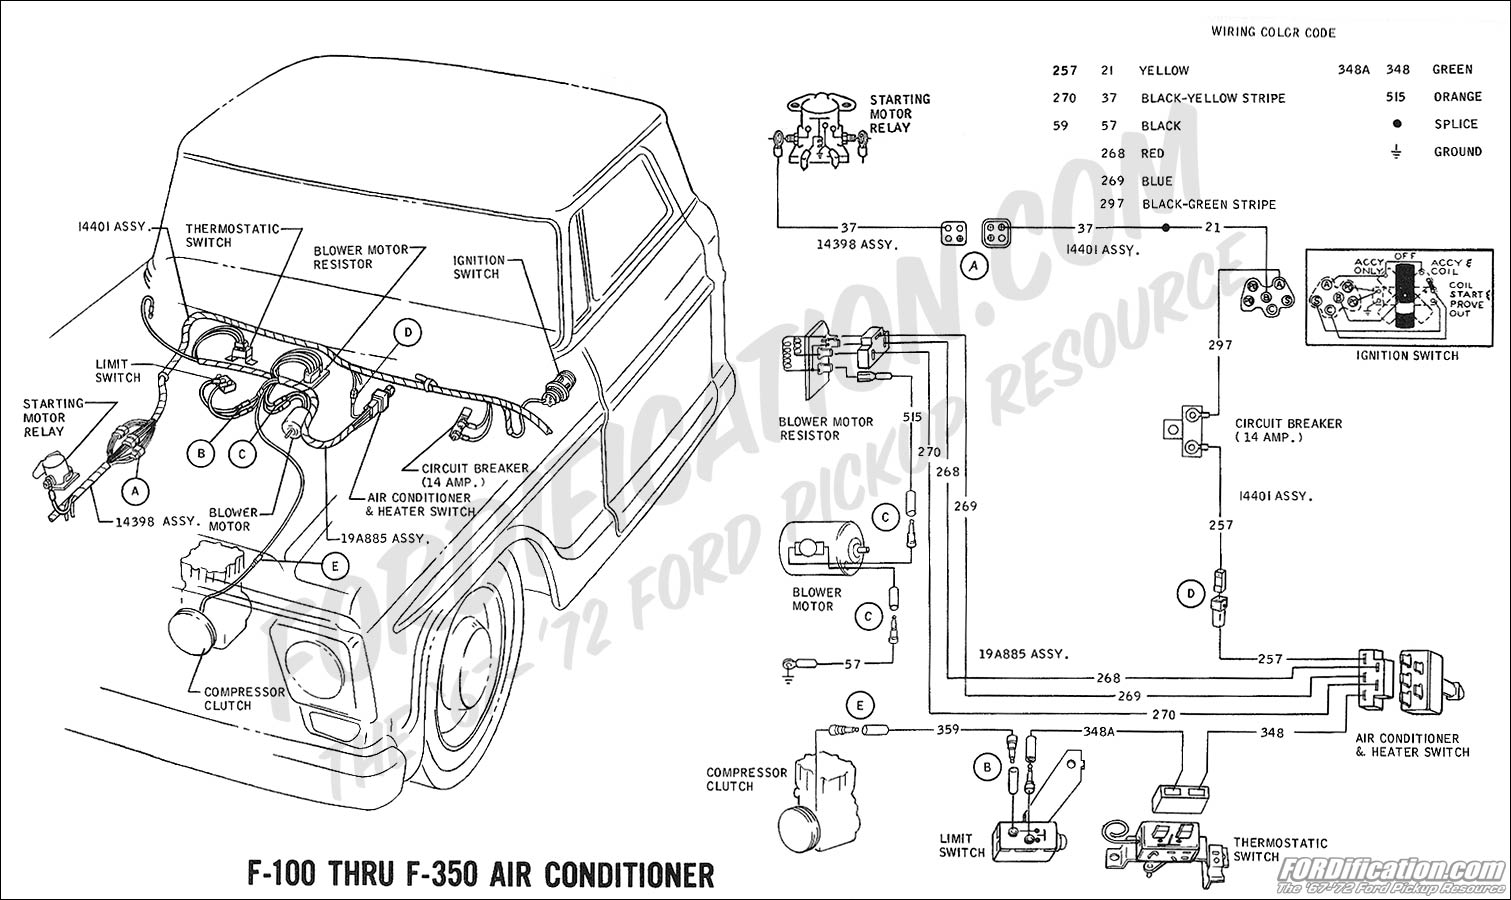 hight resolution of 1969 f 100 thru f 350 air conditioner ford truck technical drawings and schematics